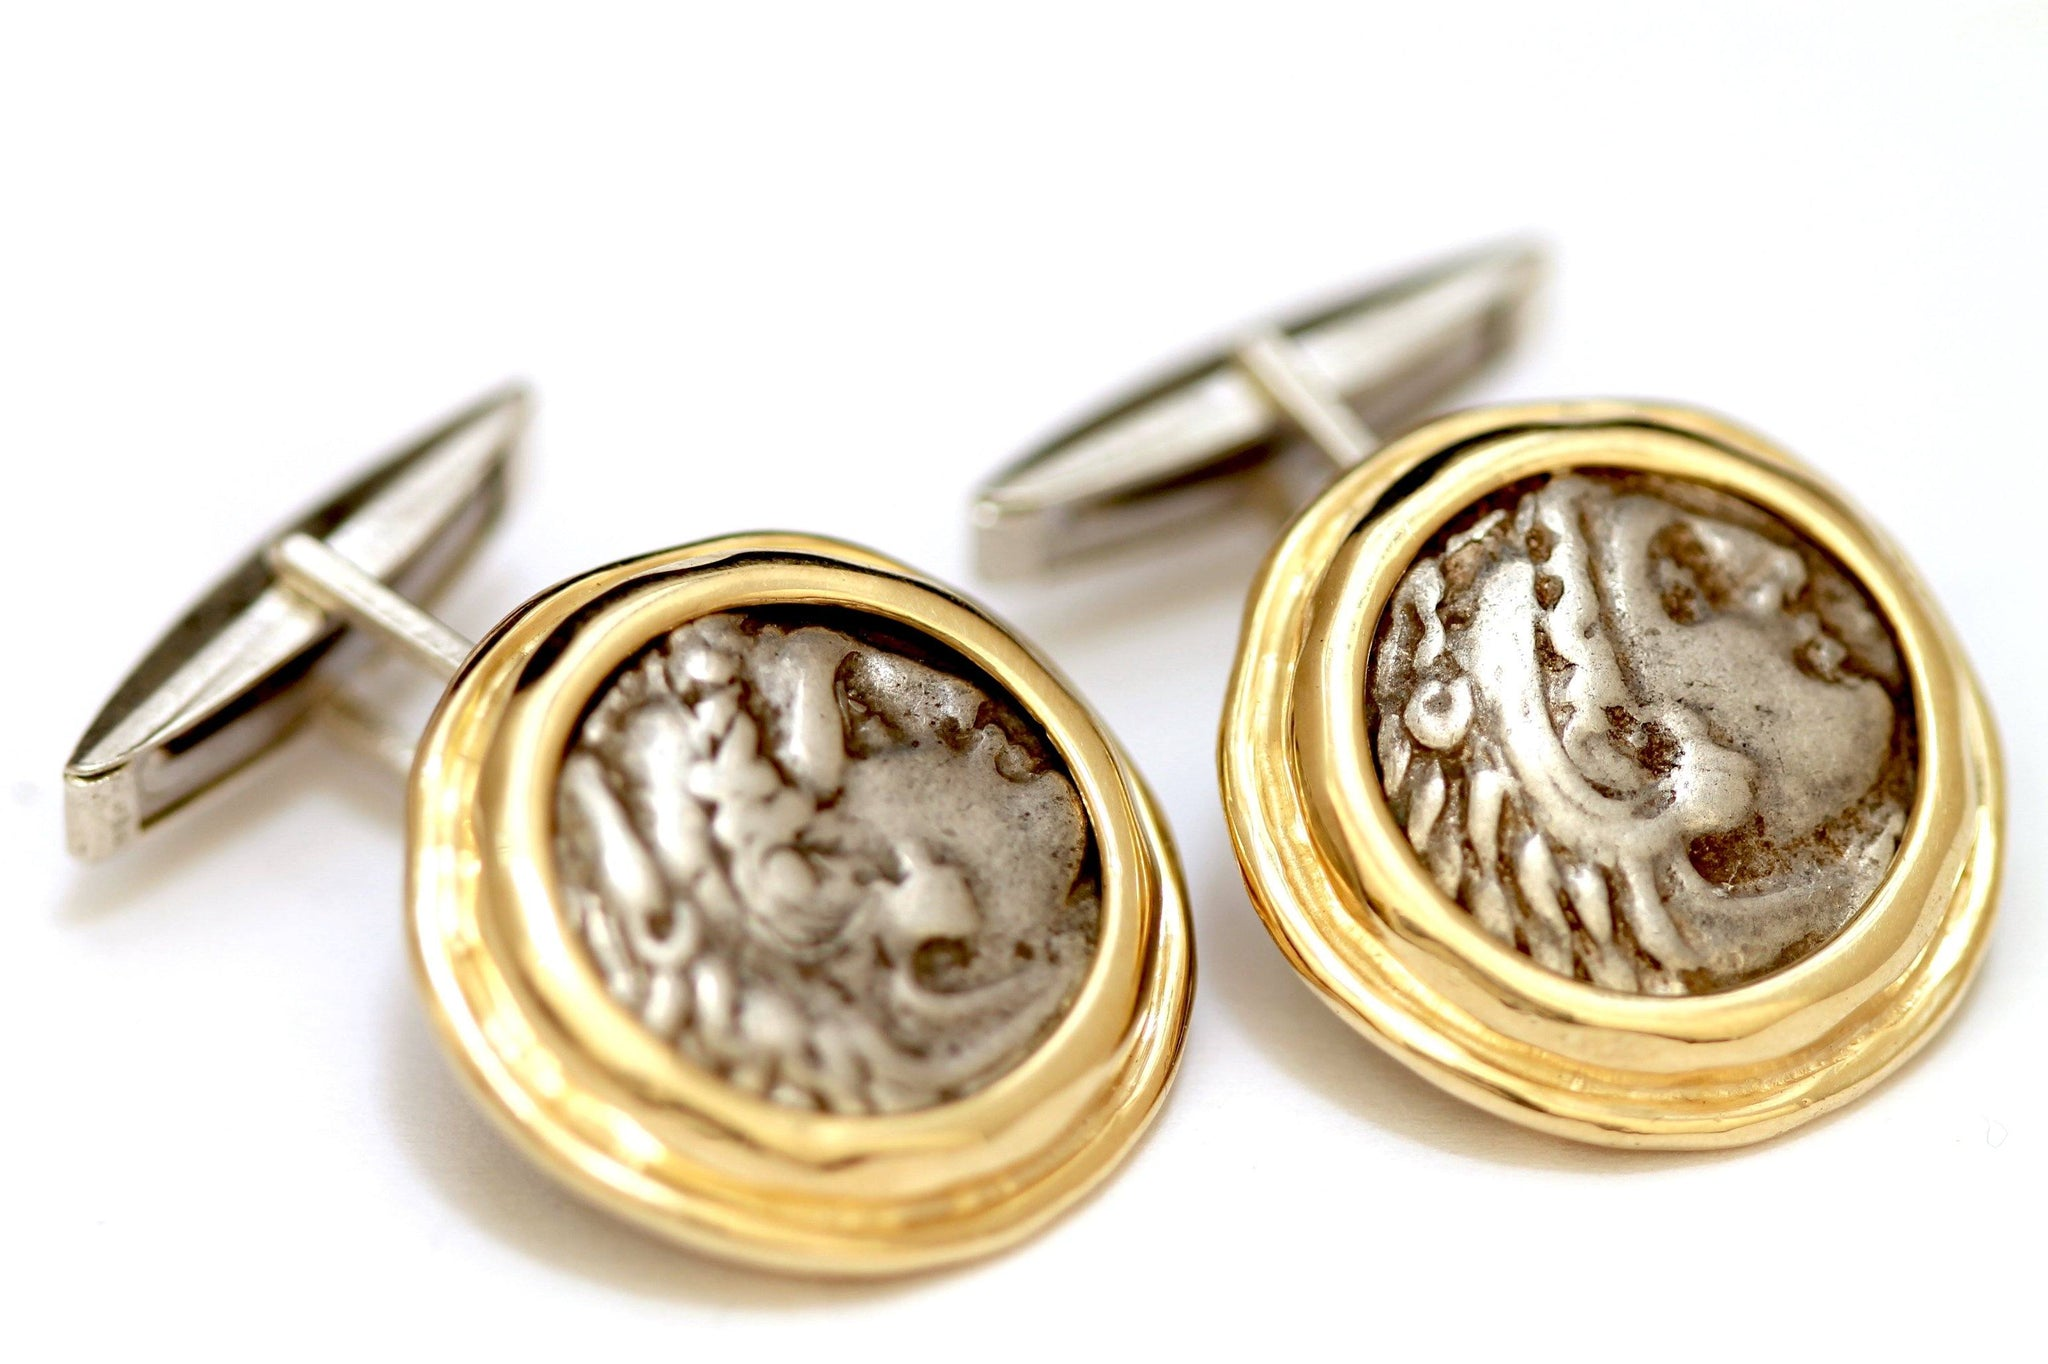 14K Gold Cufflinks, Alexander The Great, Greek Coins, Certificate ID13063 - Erez Ancient Coin Jewelry